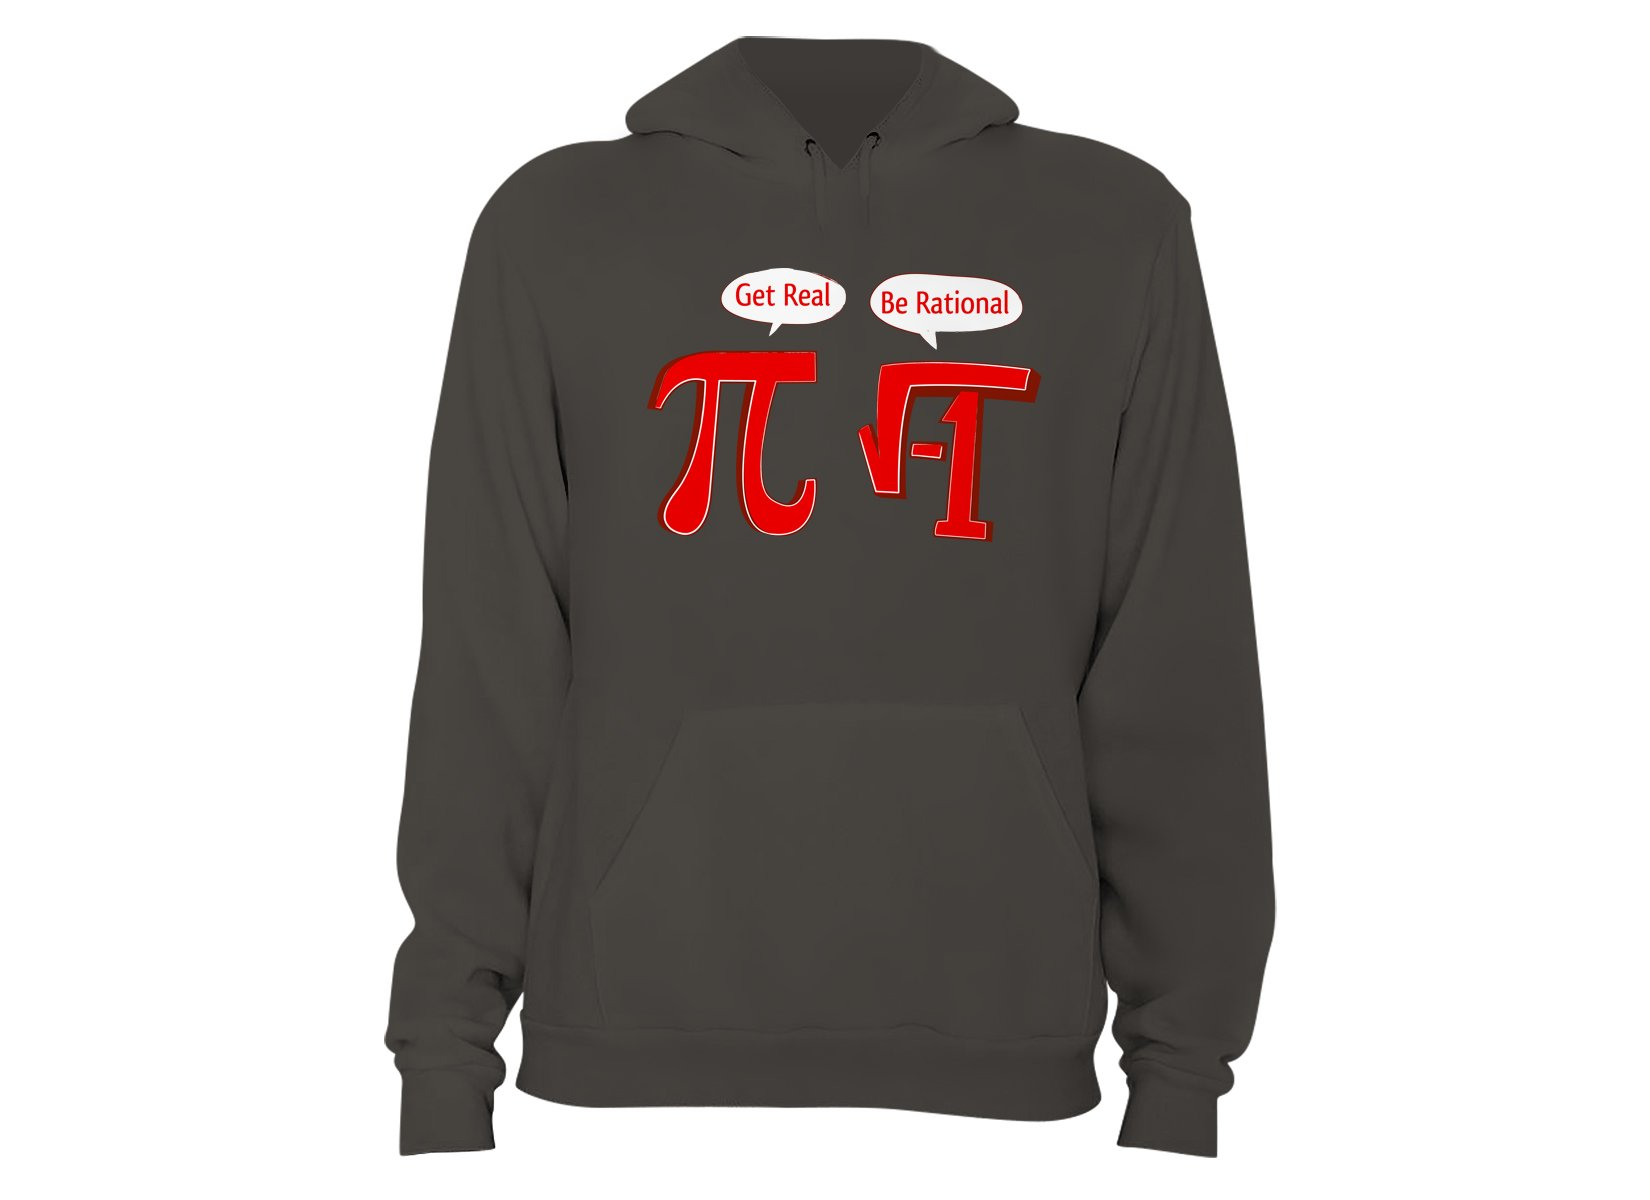 Pi Be Rational on Hoodie